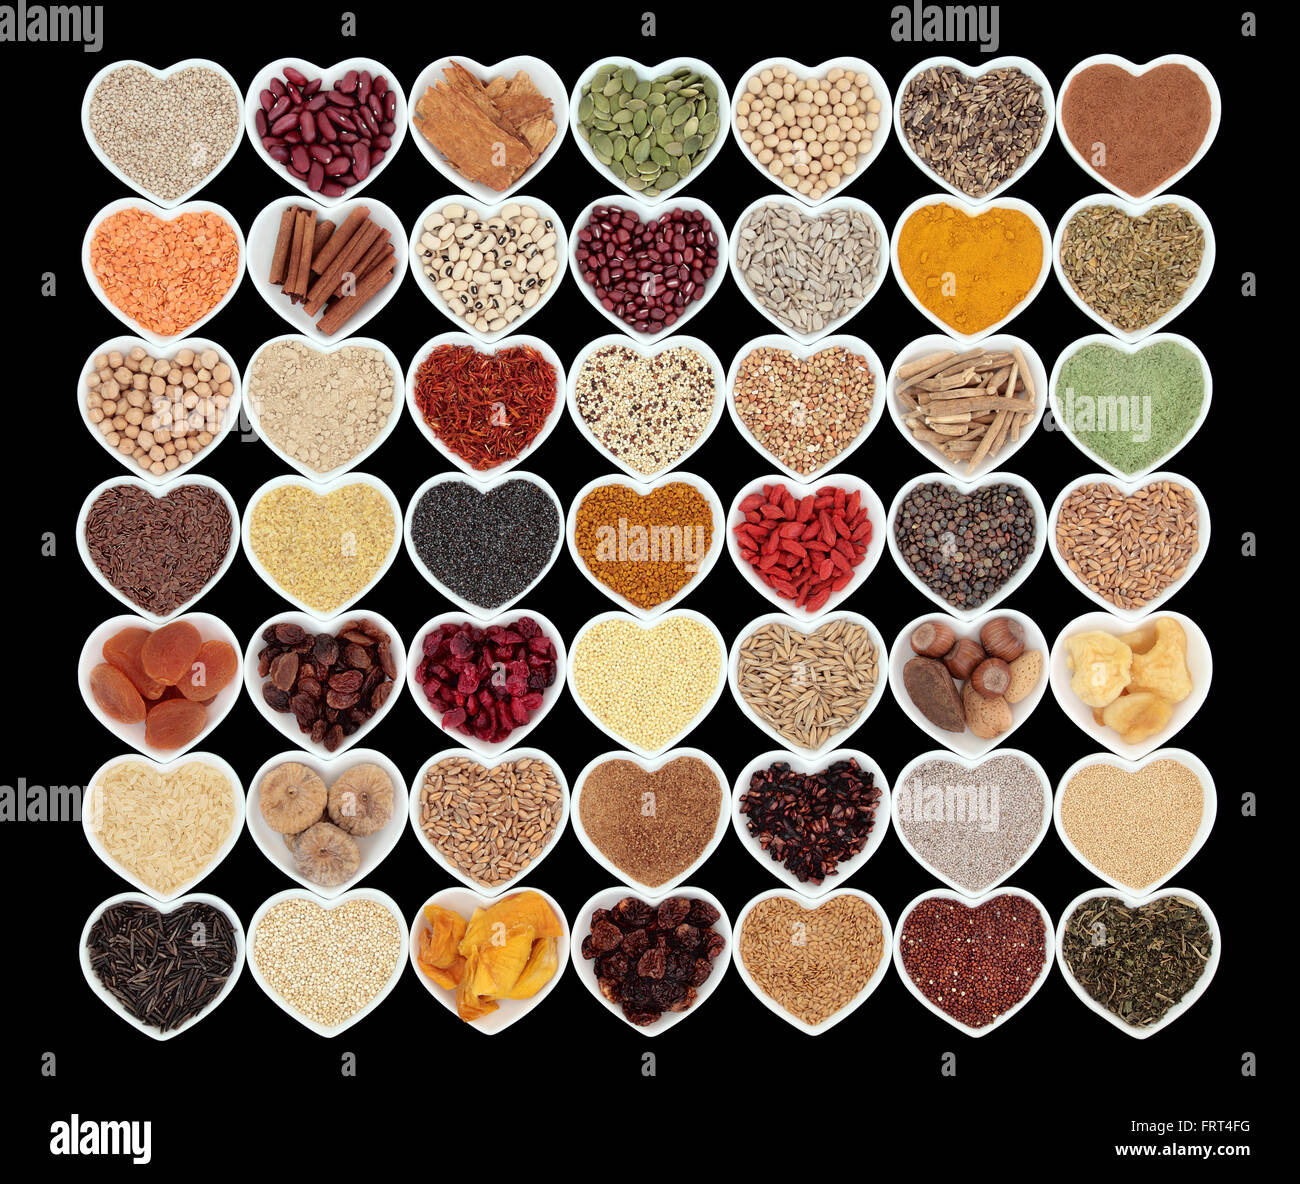 Large healthy dried super food in heart shaped bowls over black background. High in antioxidants, minerals and vitamins. - Stock Image